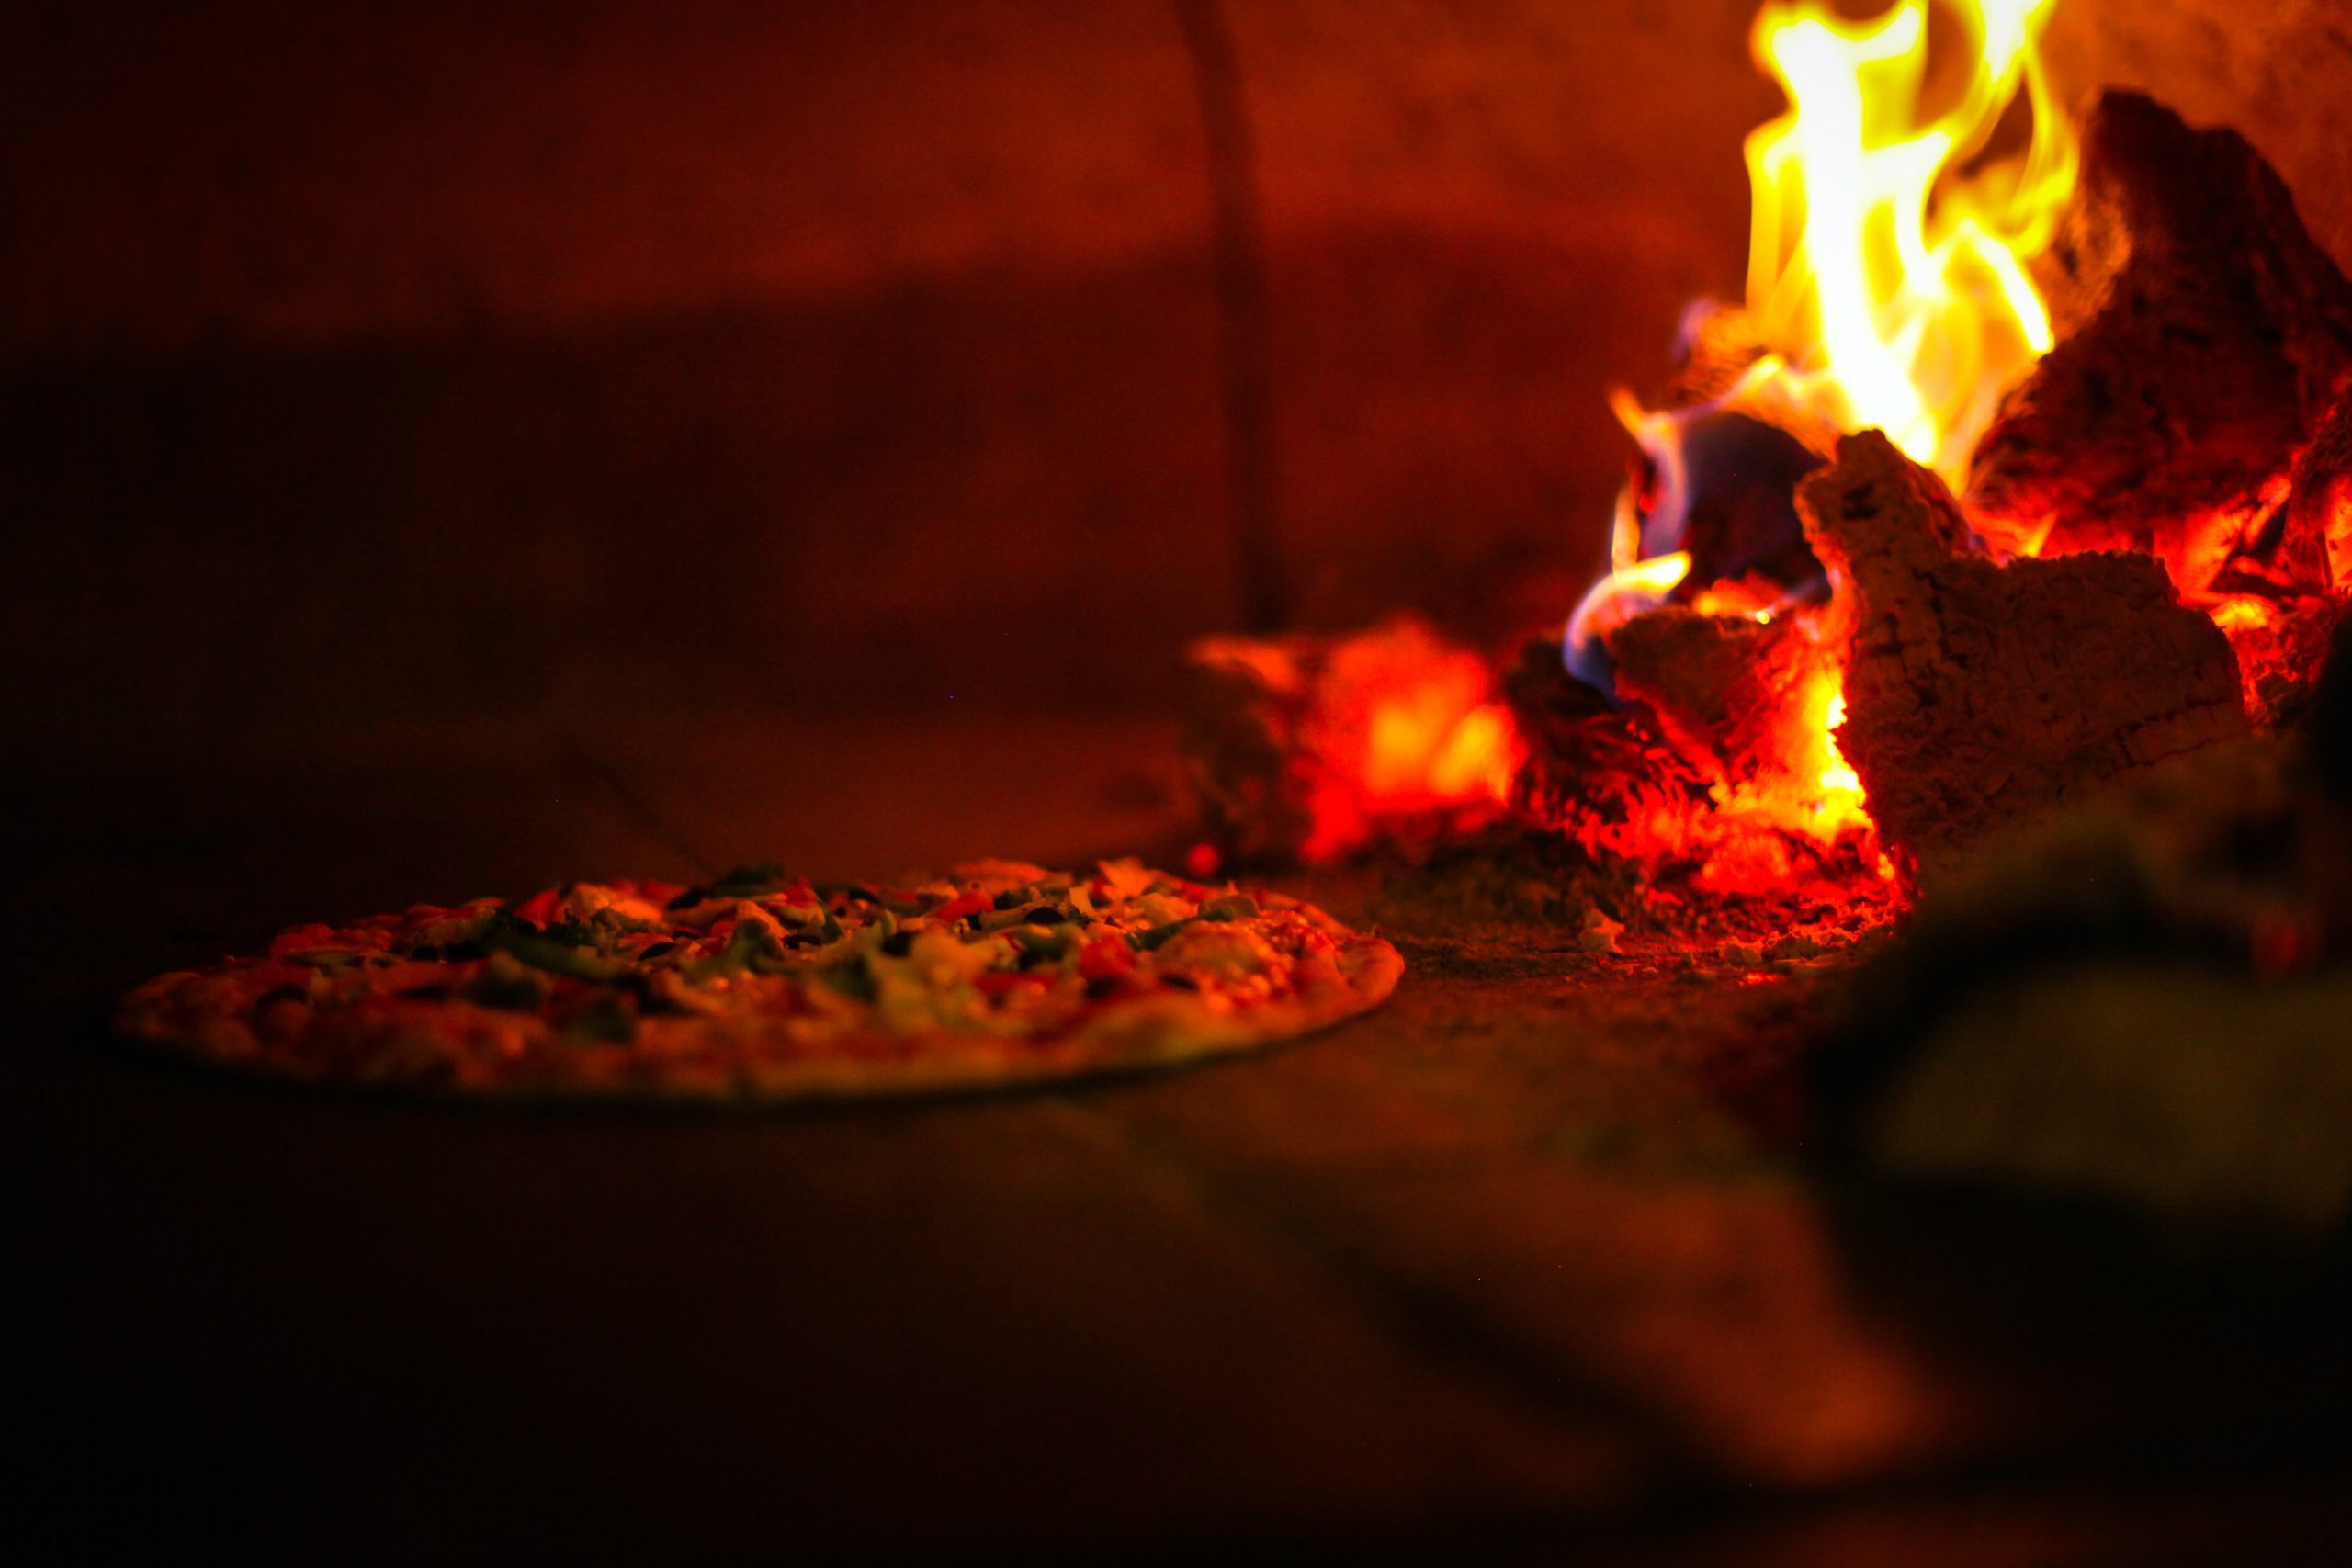 Can You Cook Pizza Using a Pellet Stove?